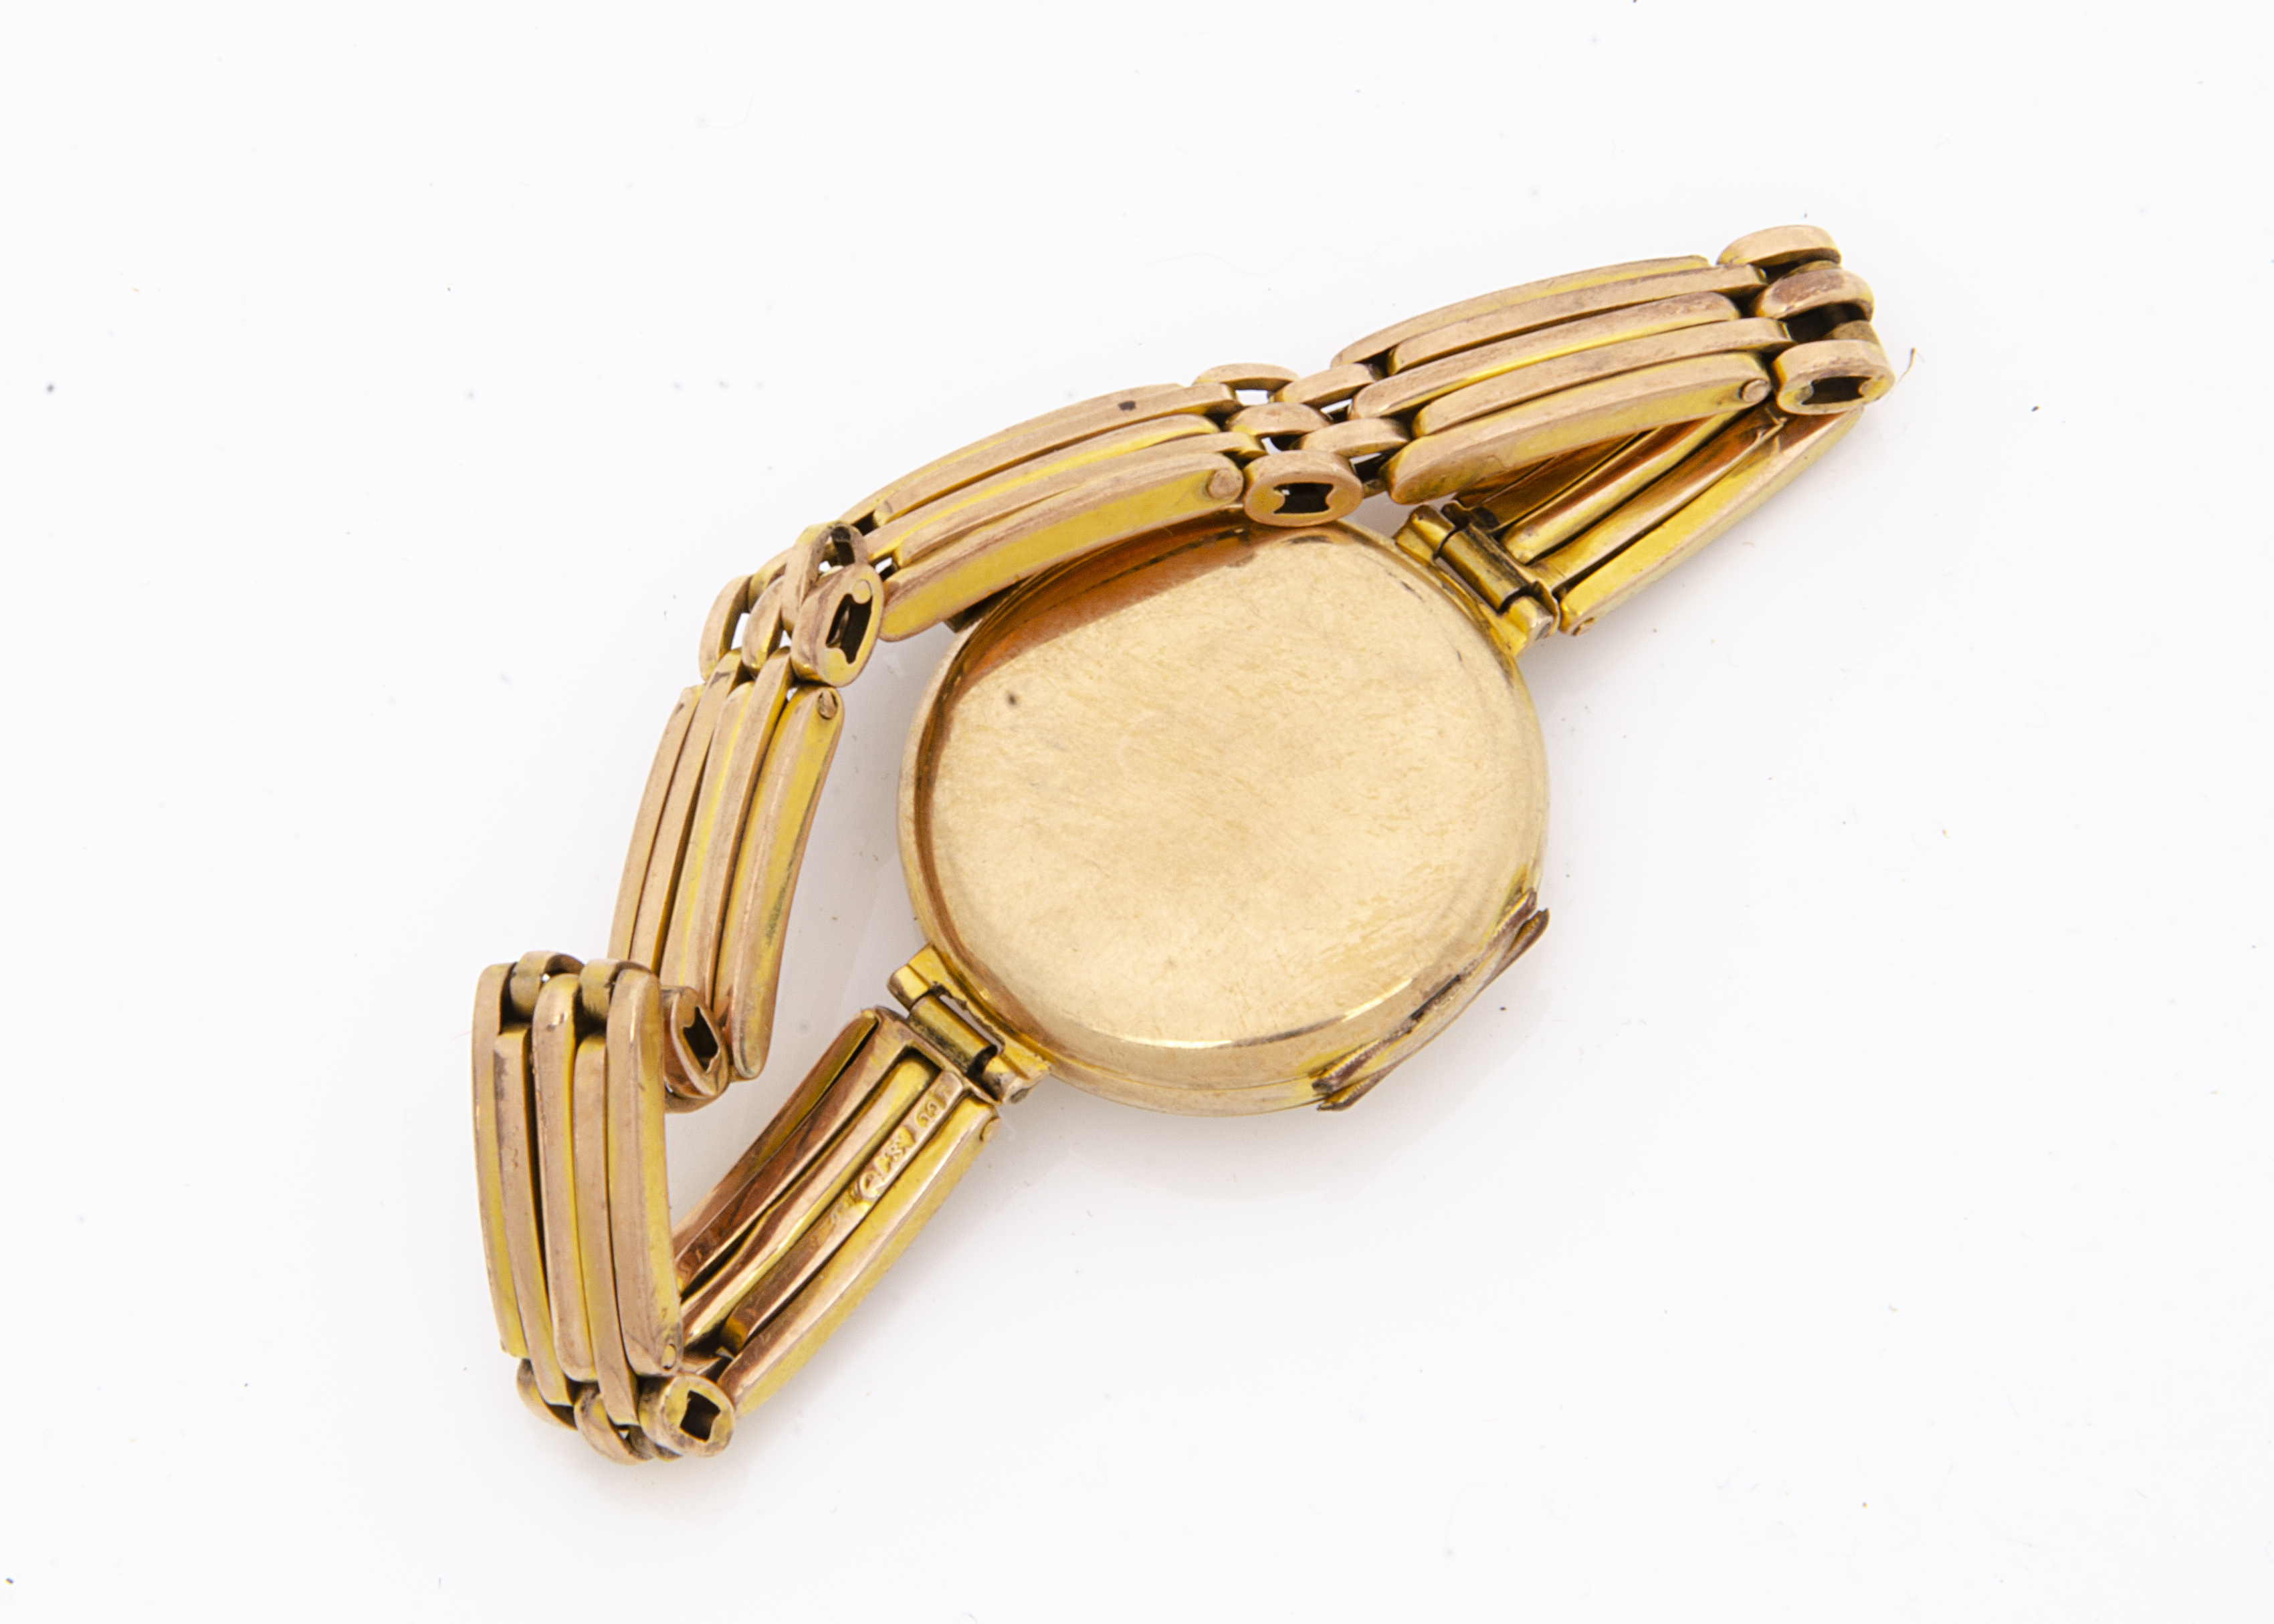 An Art Deco period Buren 9ct gold trench style lady's wristwatch, 22mm case, hinge damaged and - Image 2 of 2